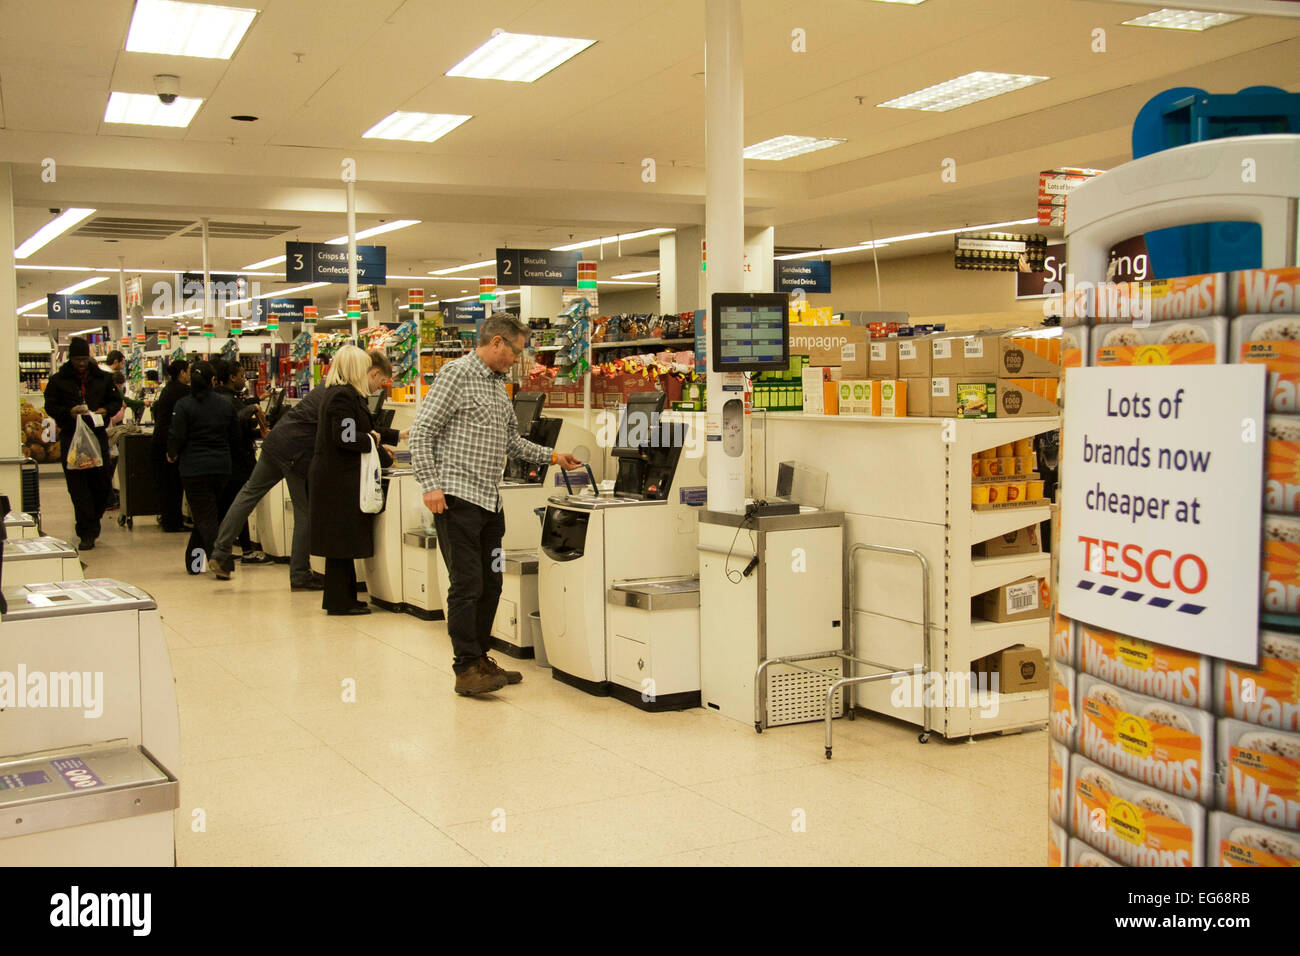 London,UK. 17th February 2015. Tesco supermarket has announced plans to close 43 unprofitable stores in the United - Stock Image